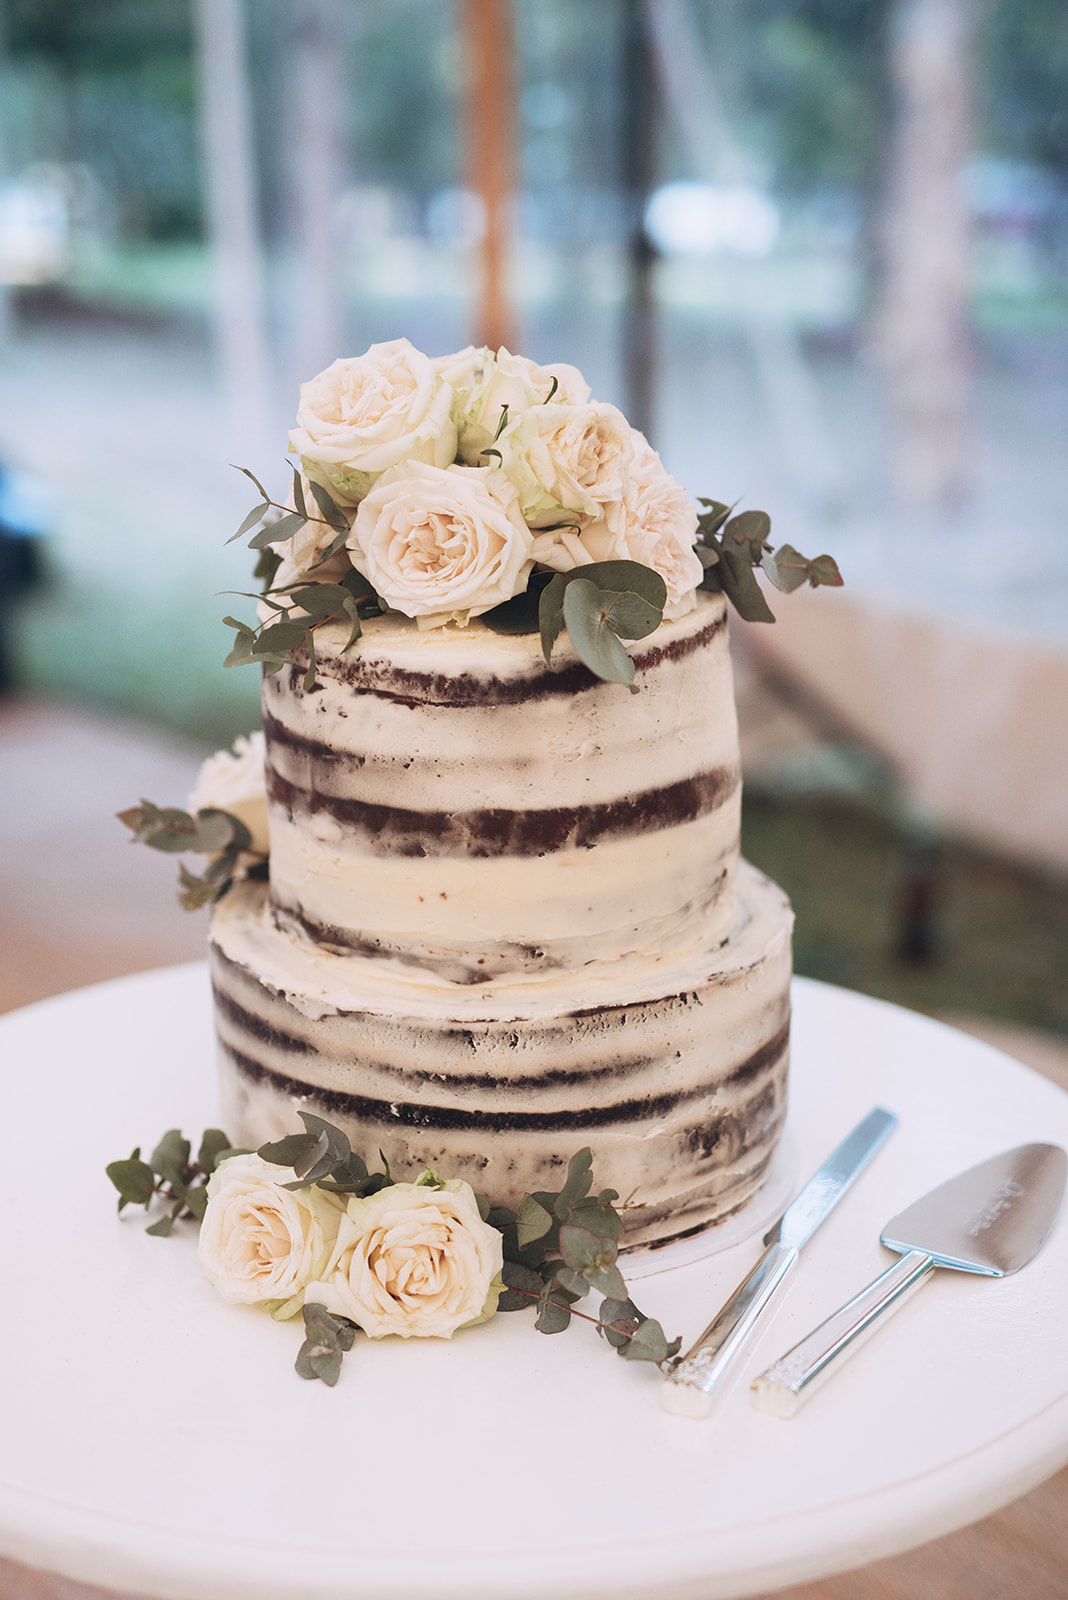 Wedding cake featuring blooms and greenery